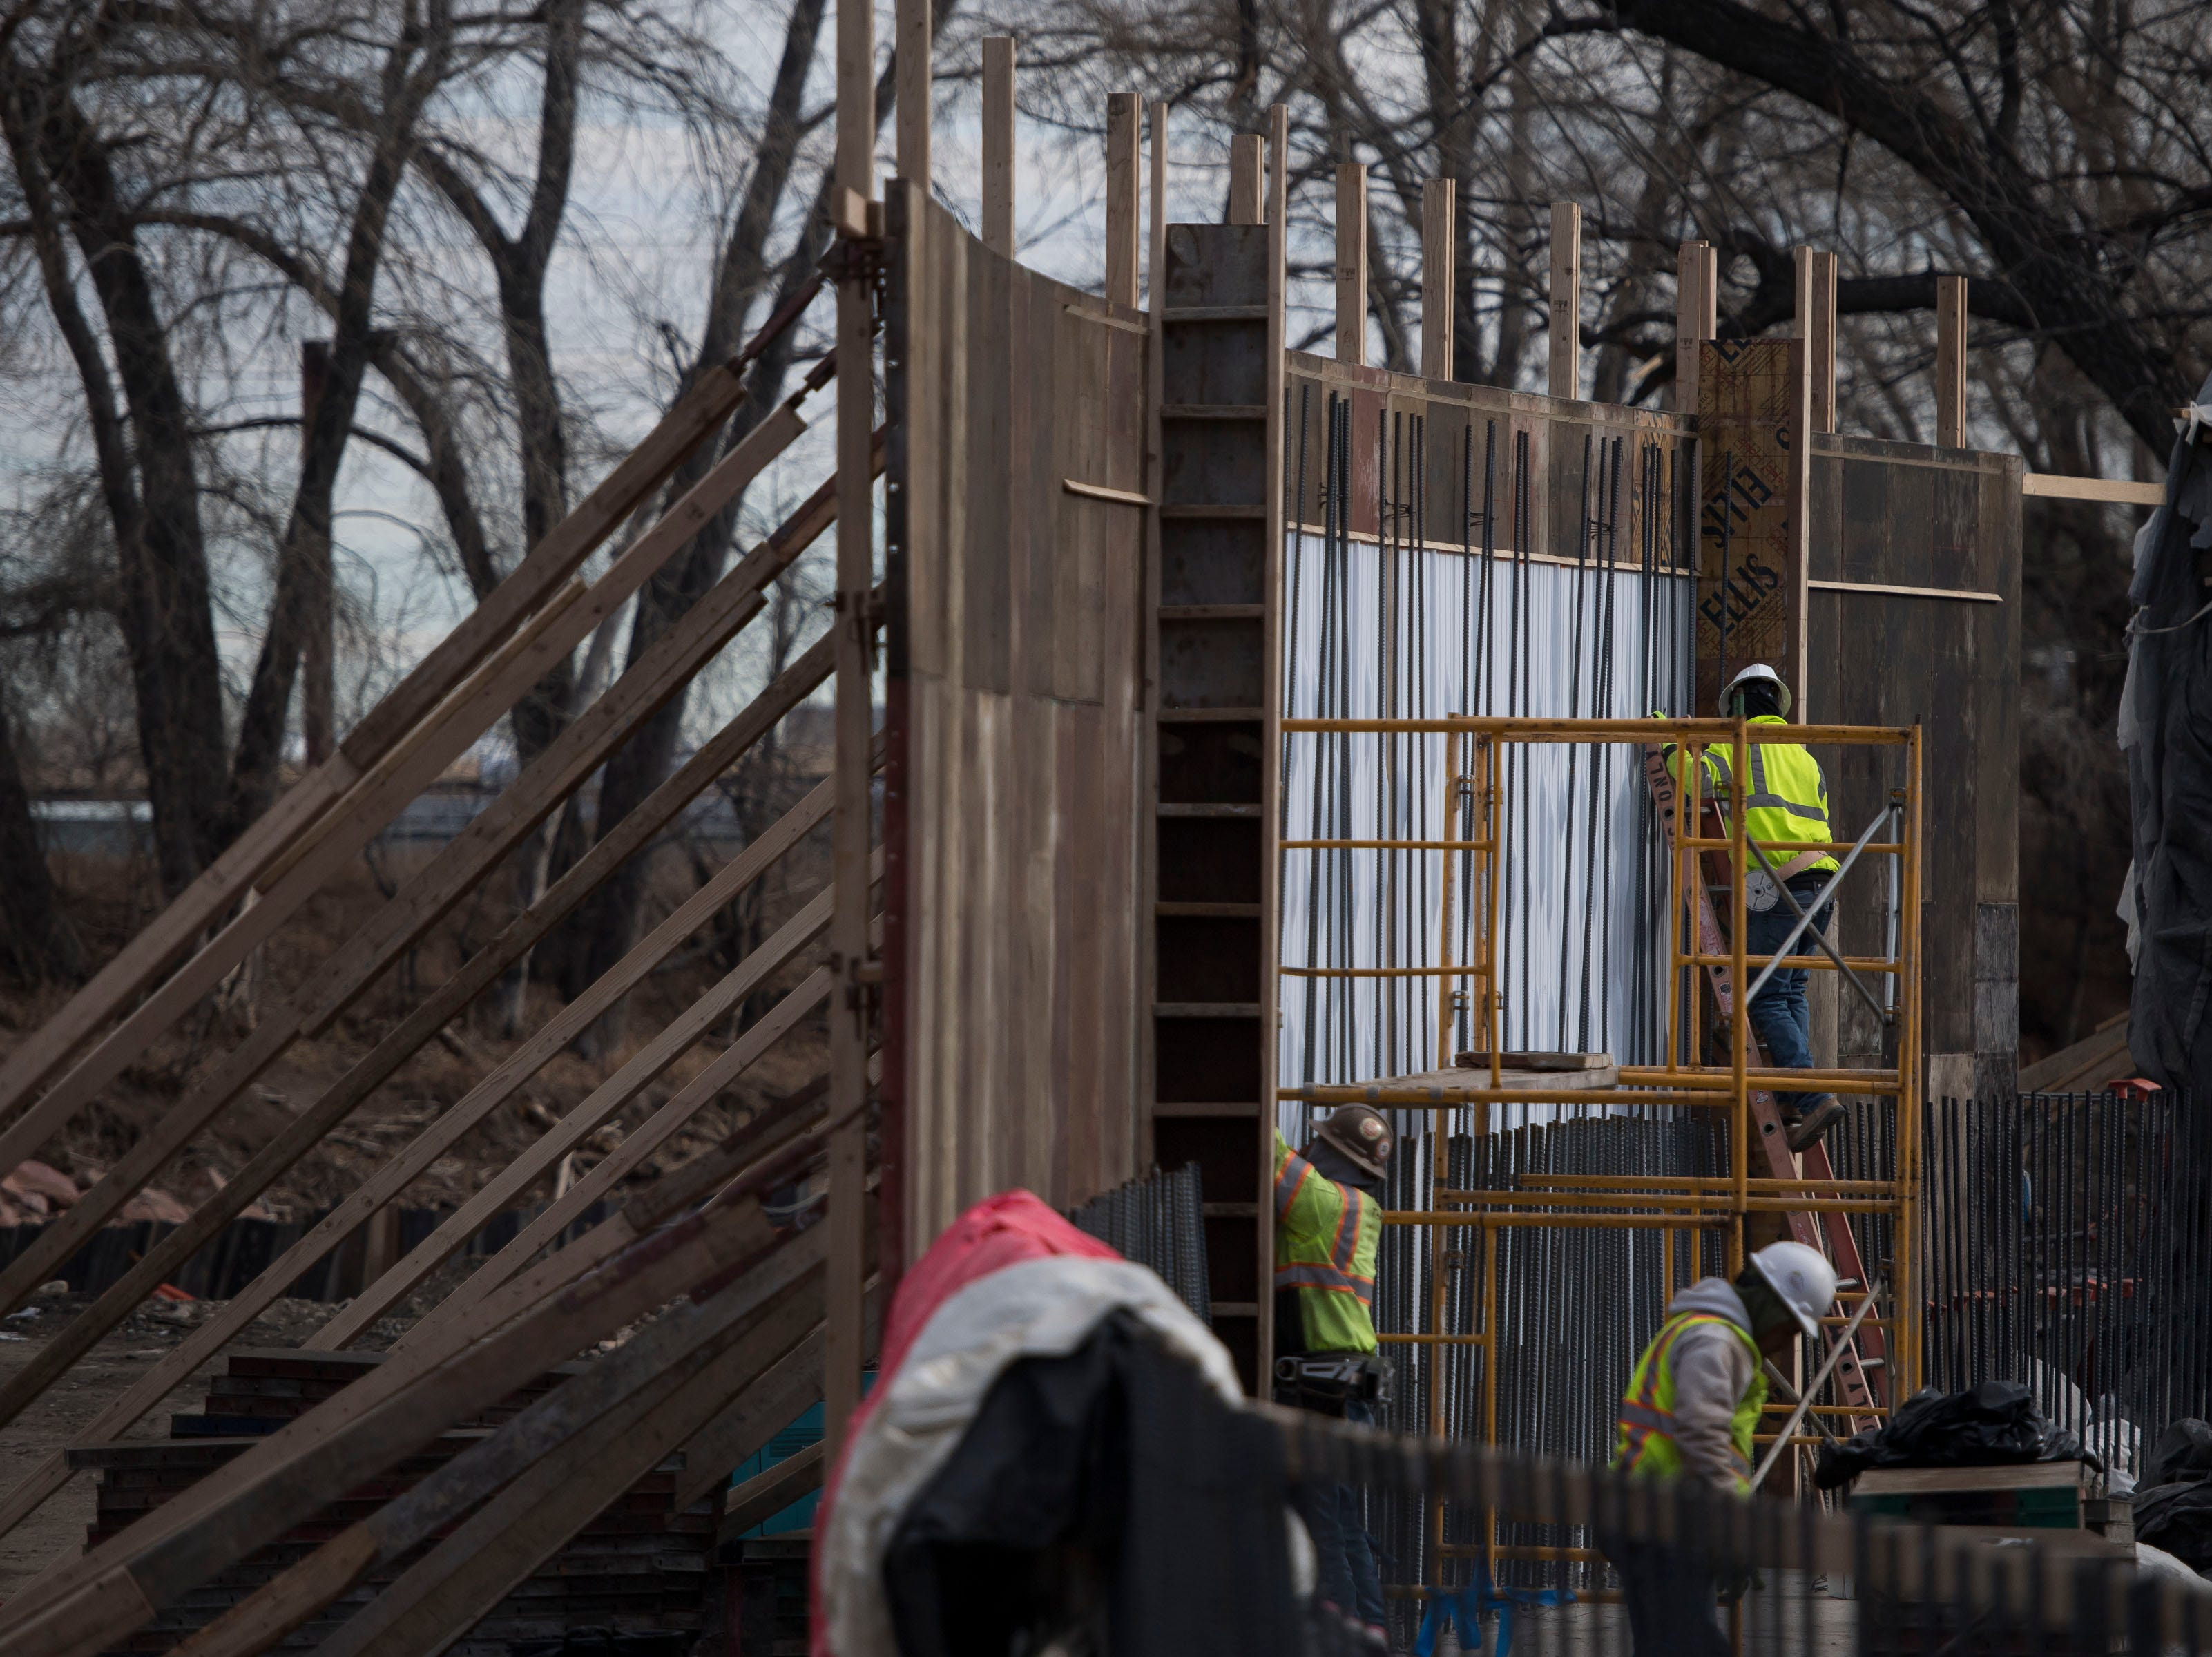 Construction crews build a concrete form on the South bank of the river on Wednesday, Jan. 23, 2019, on the Cache la Poudre River, just South of North College Avenue in Fort Collins, Colo.